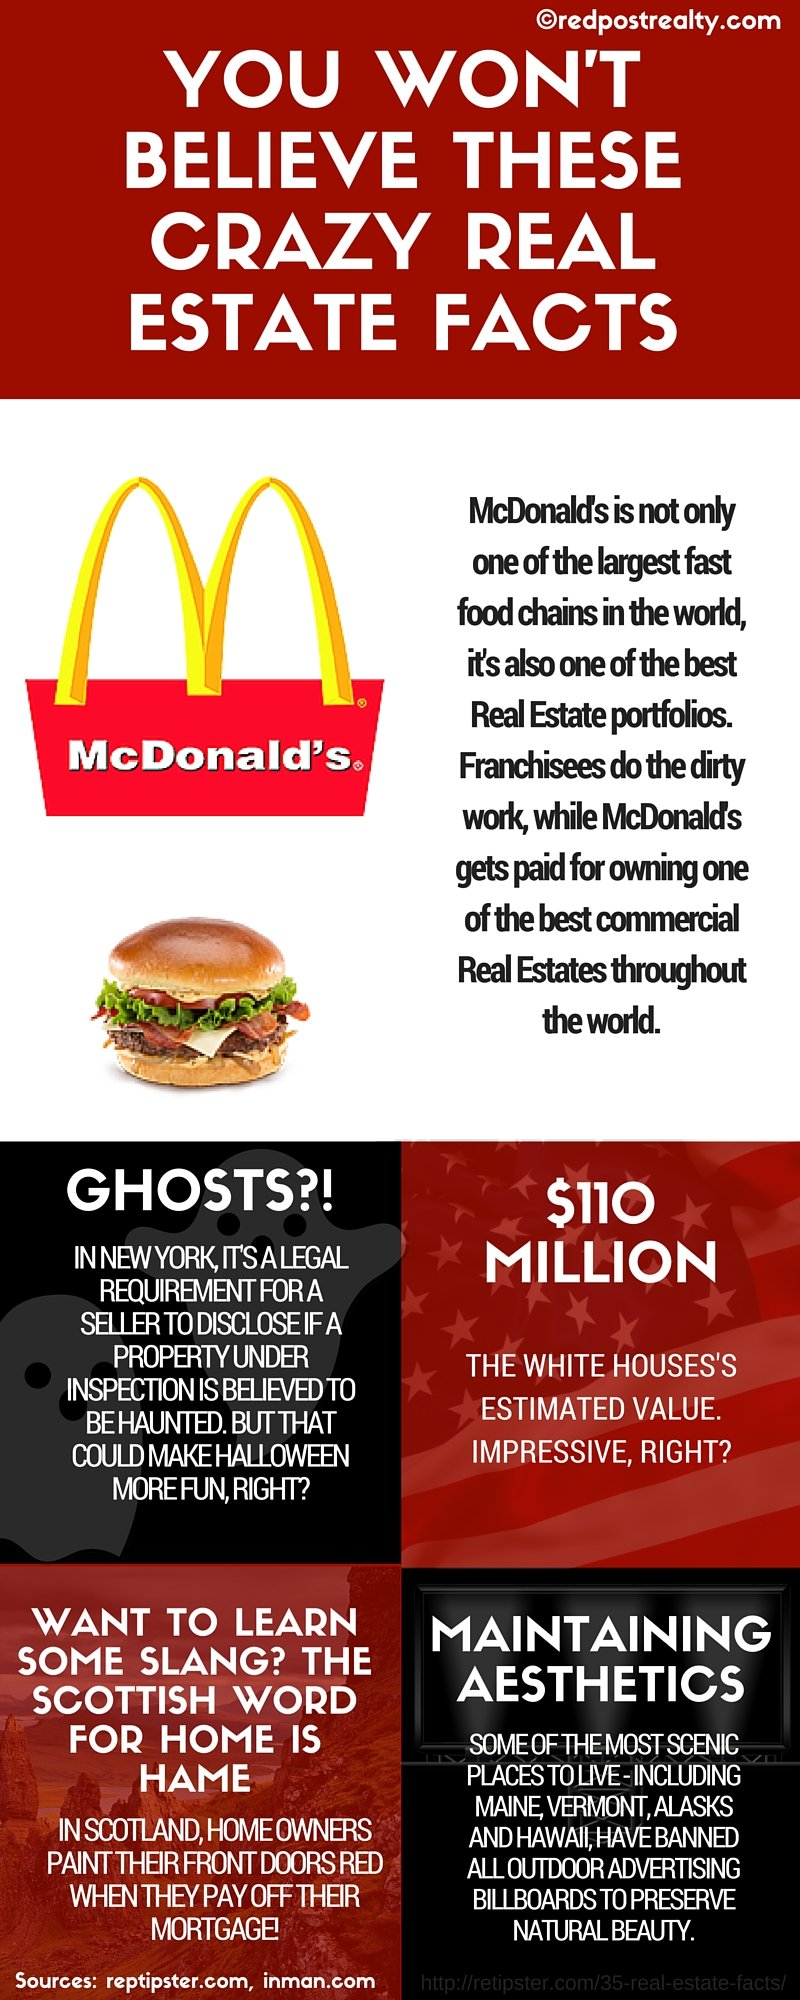 you won't believe these crazy real estate facts